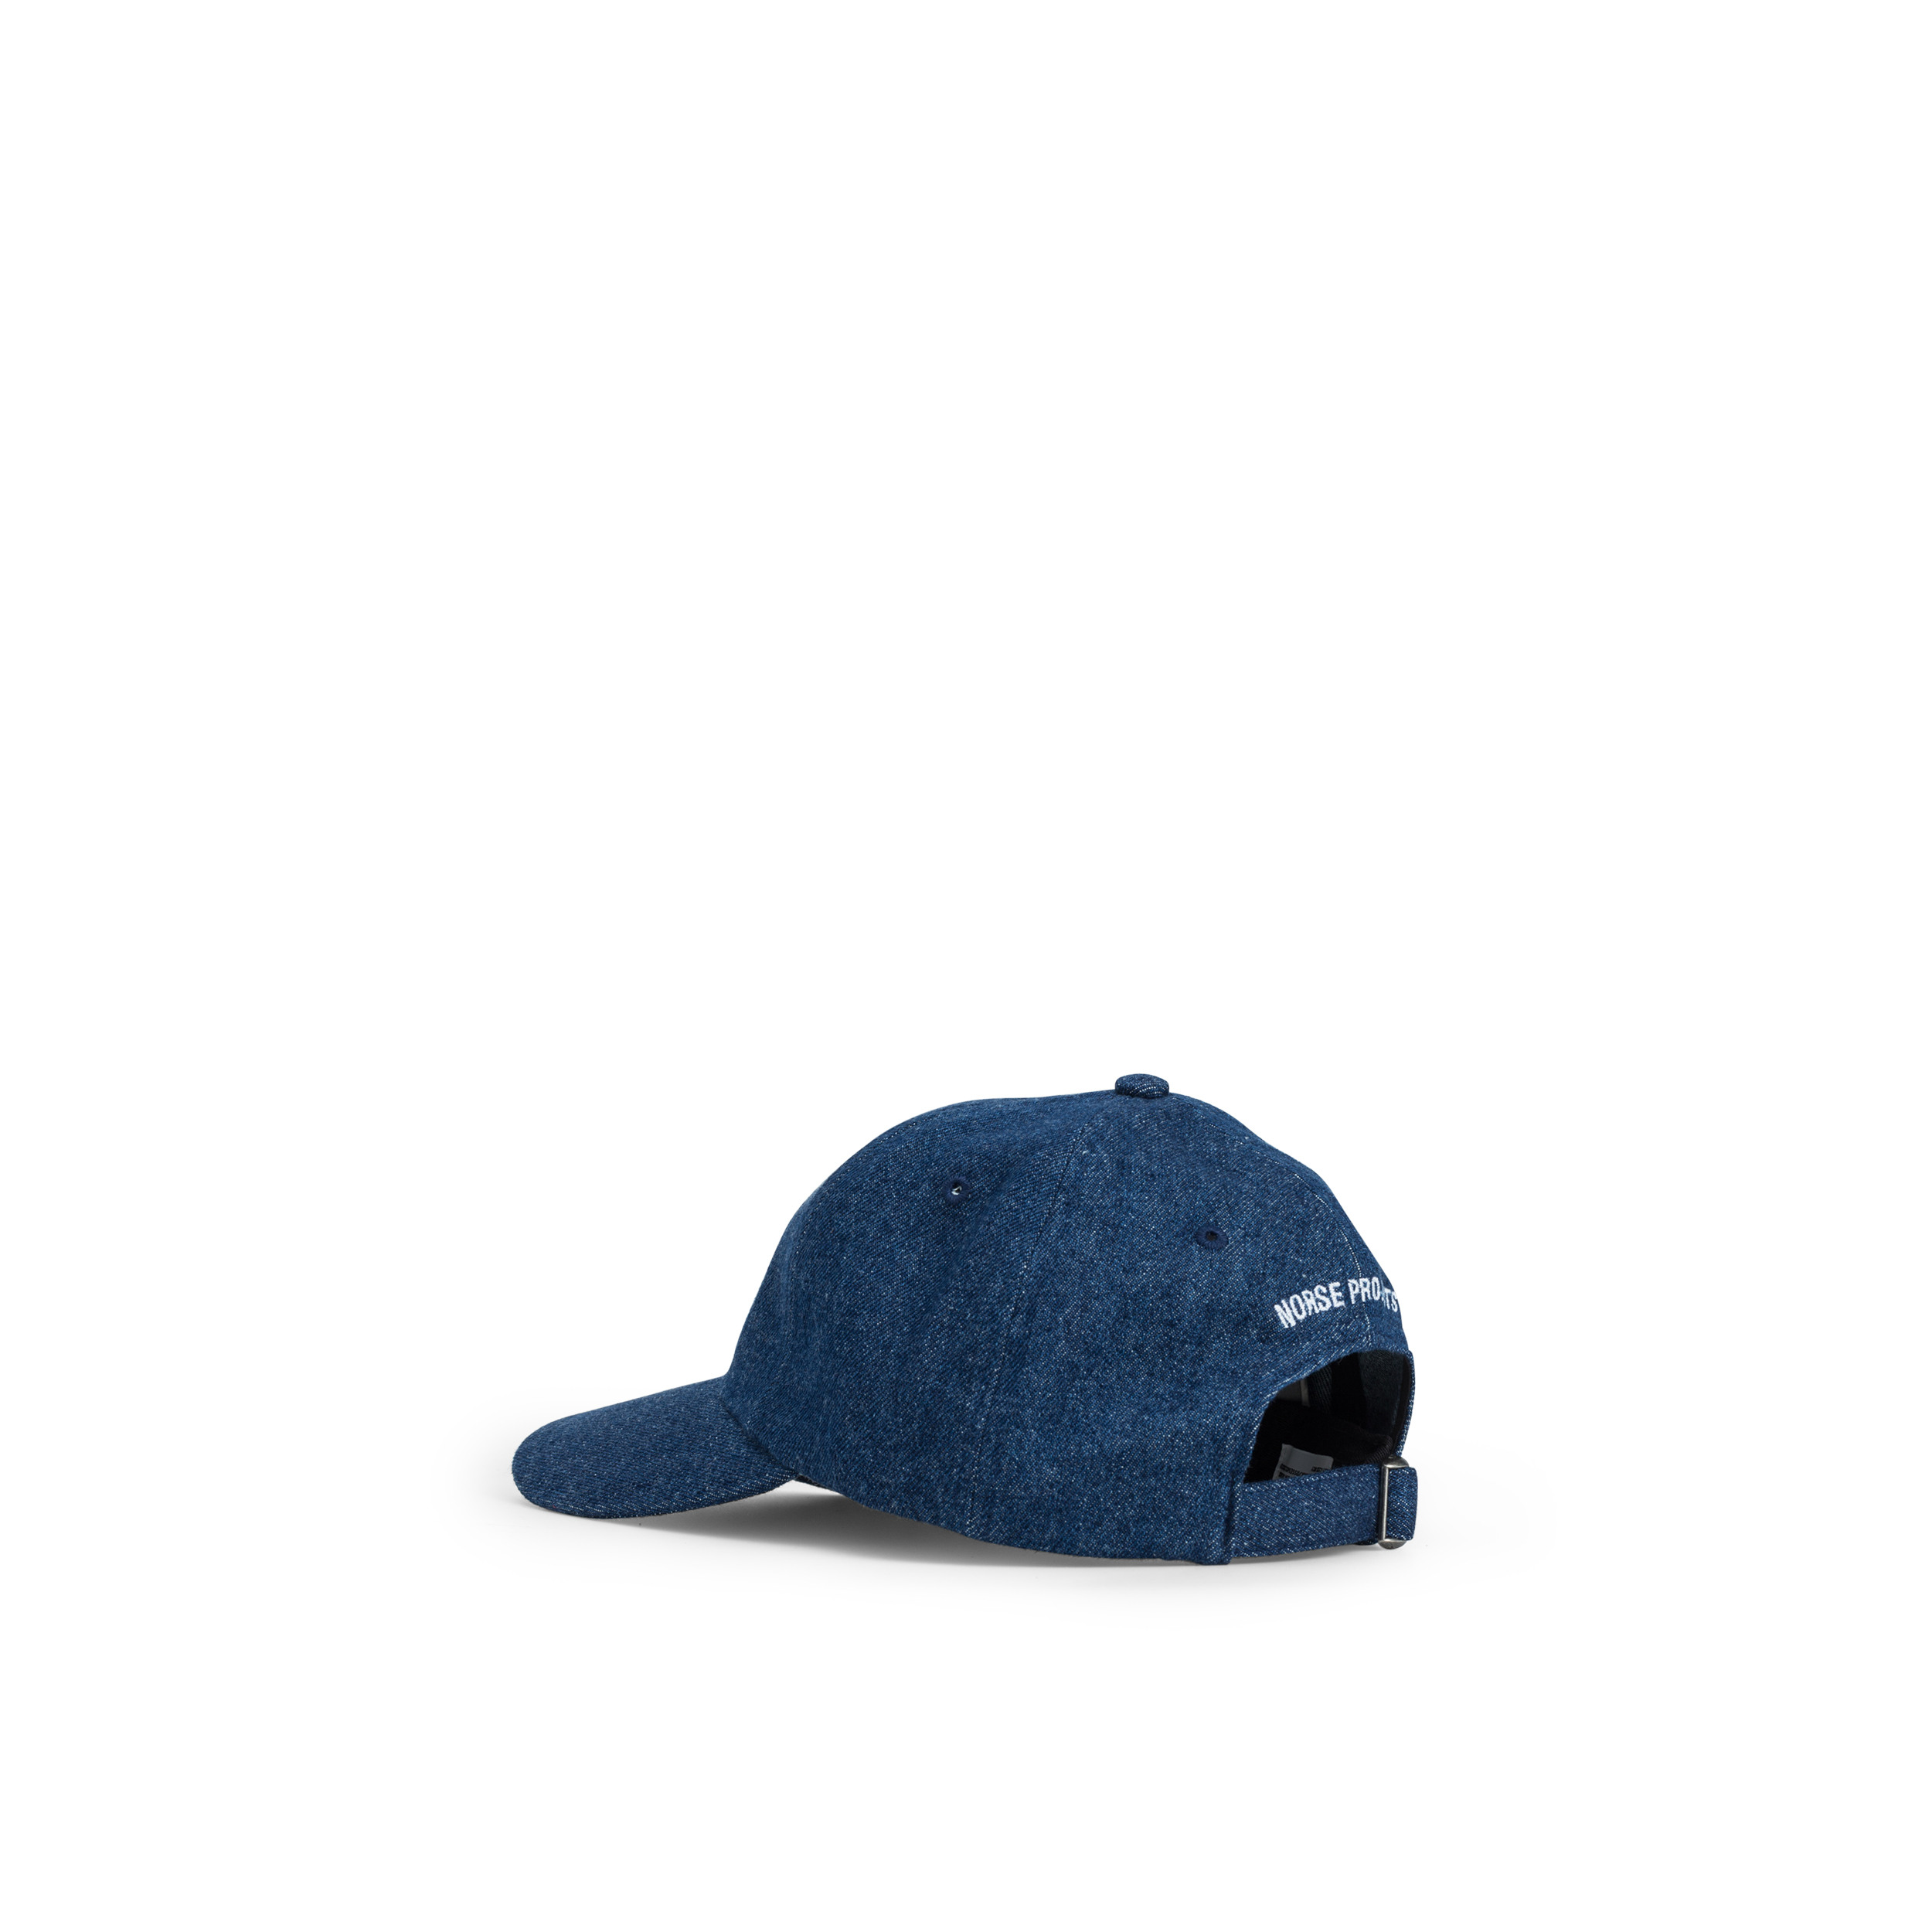 Denim Sports Cap 5f6153e89fb1